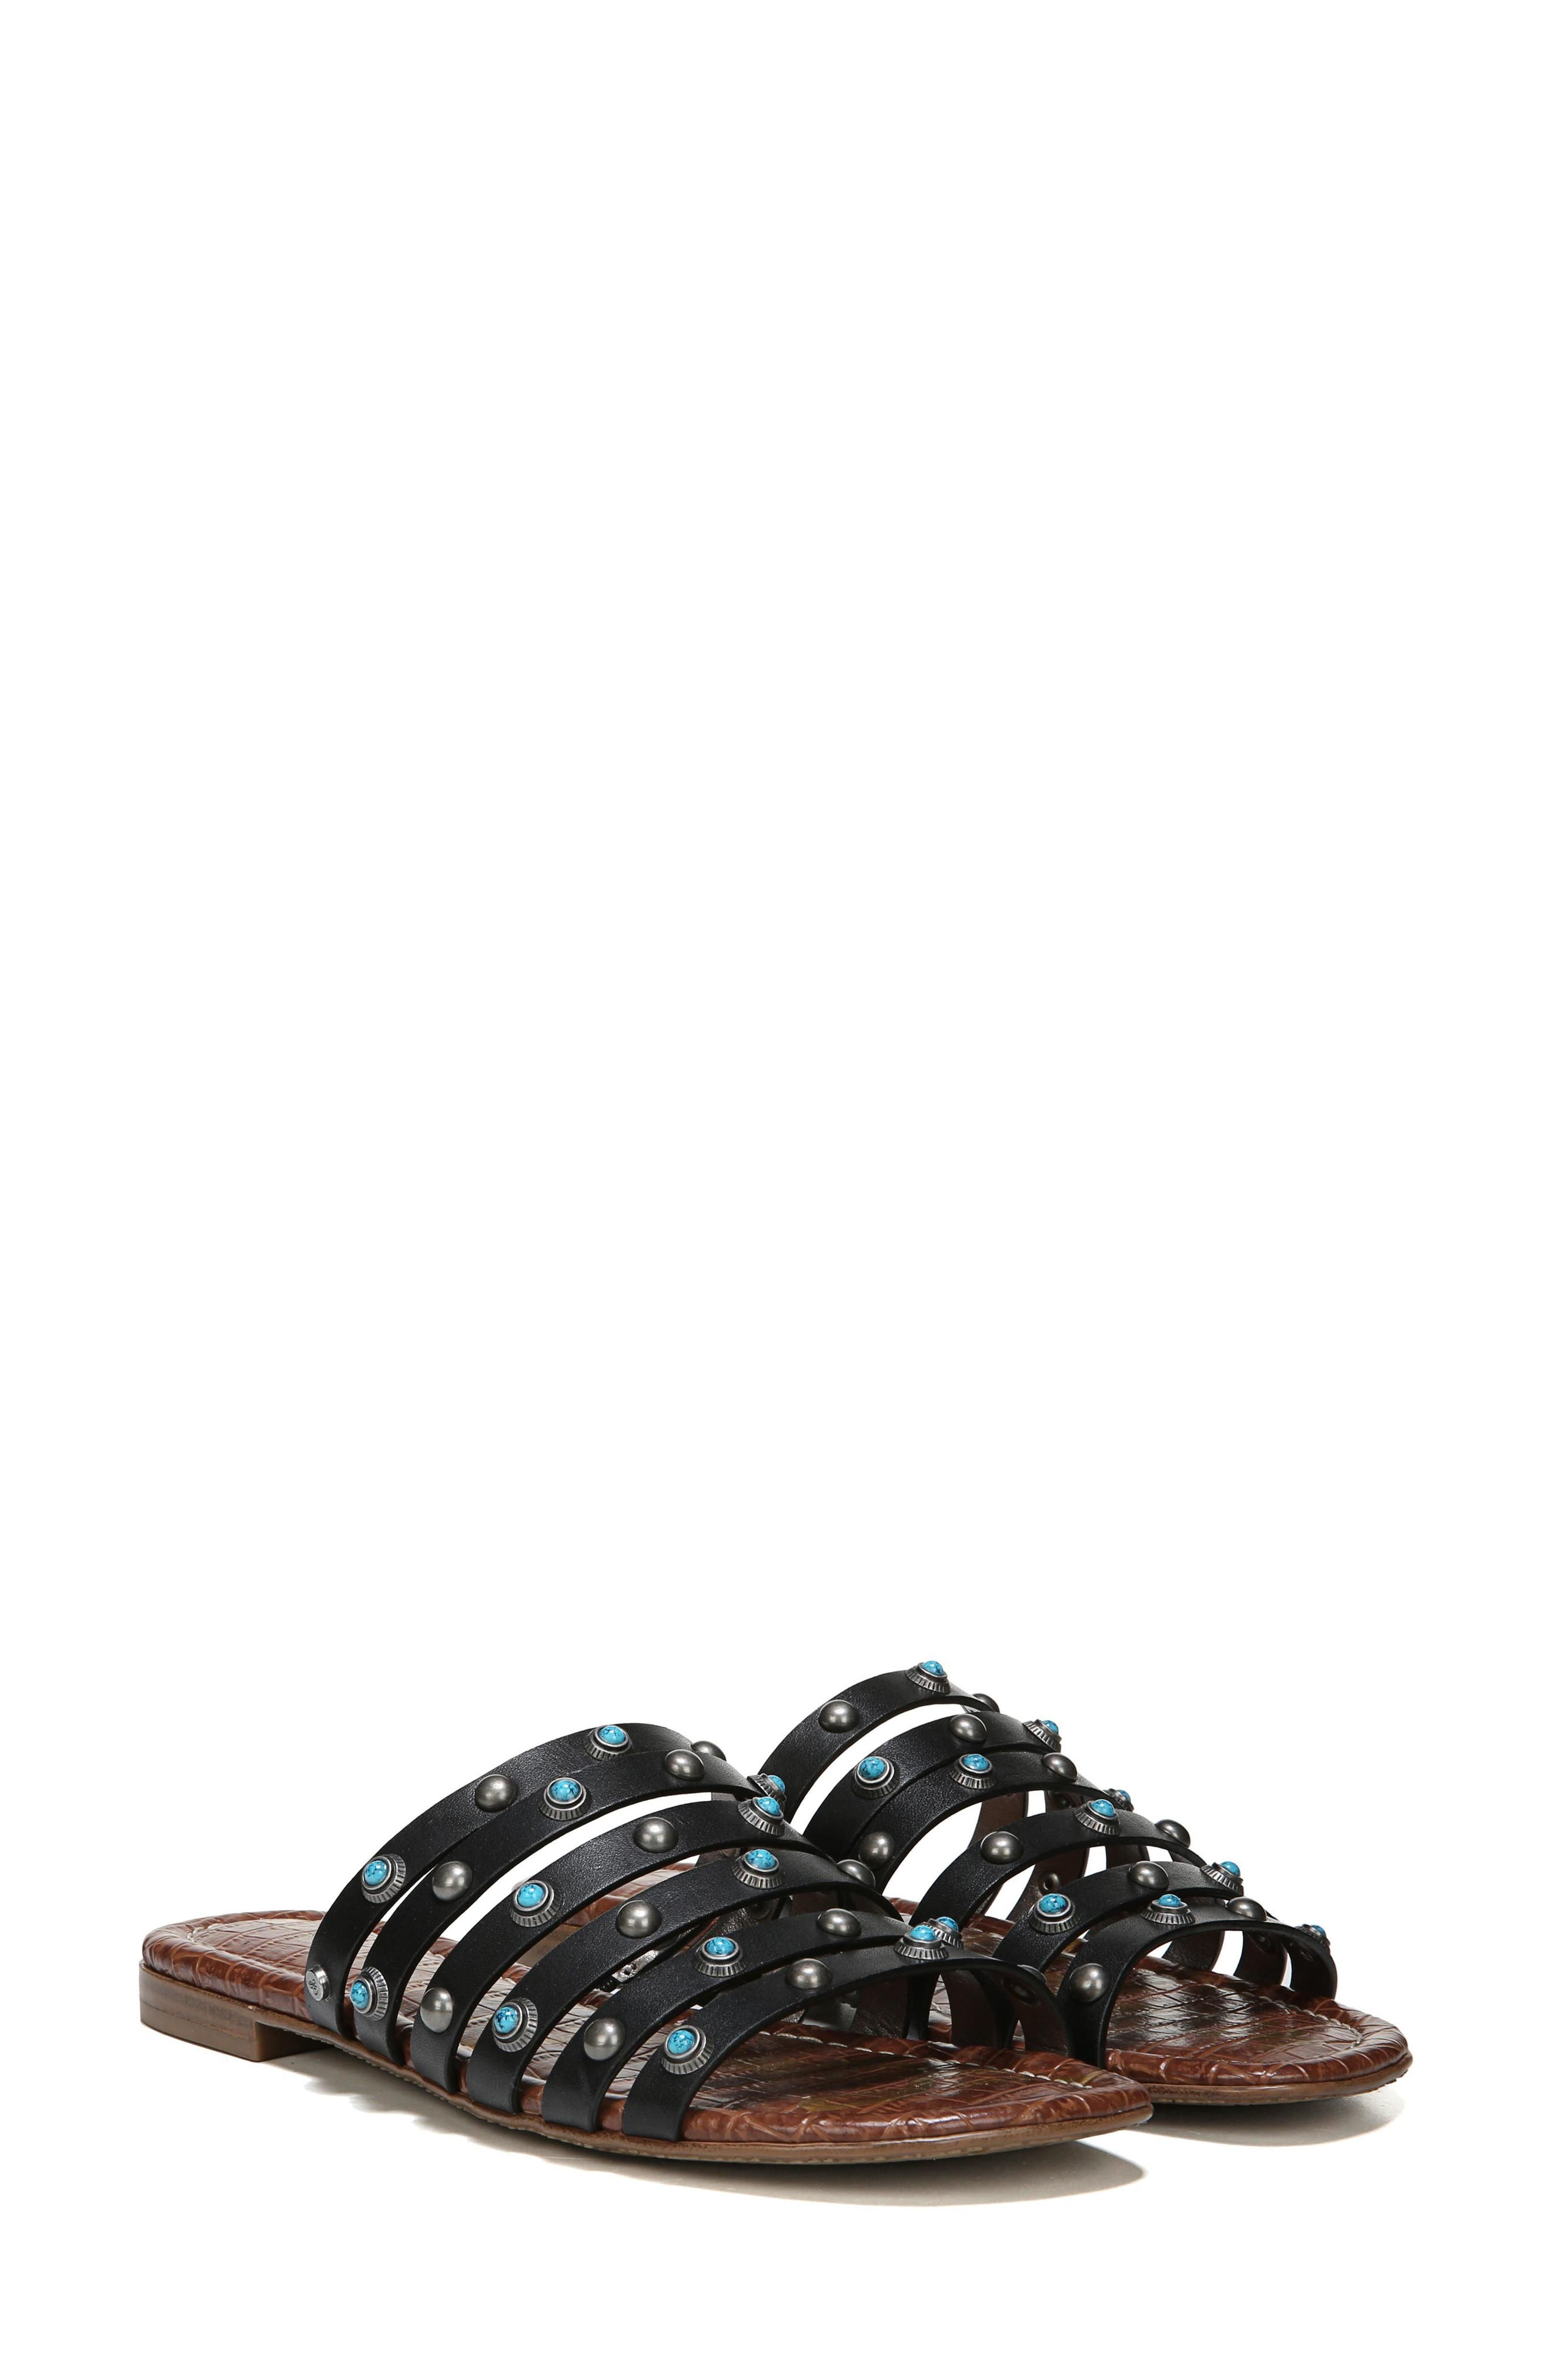 Brea Studded Slide Sandal,                             Alternate thumbnail 22, color,